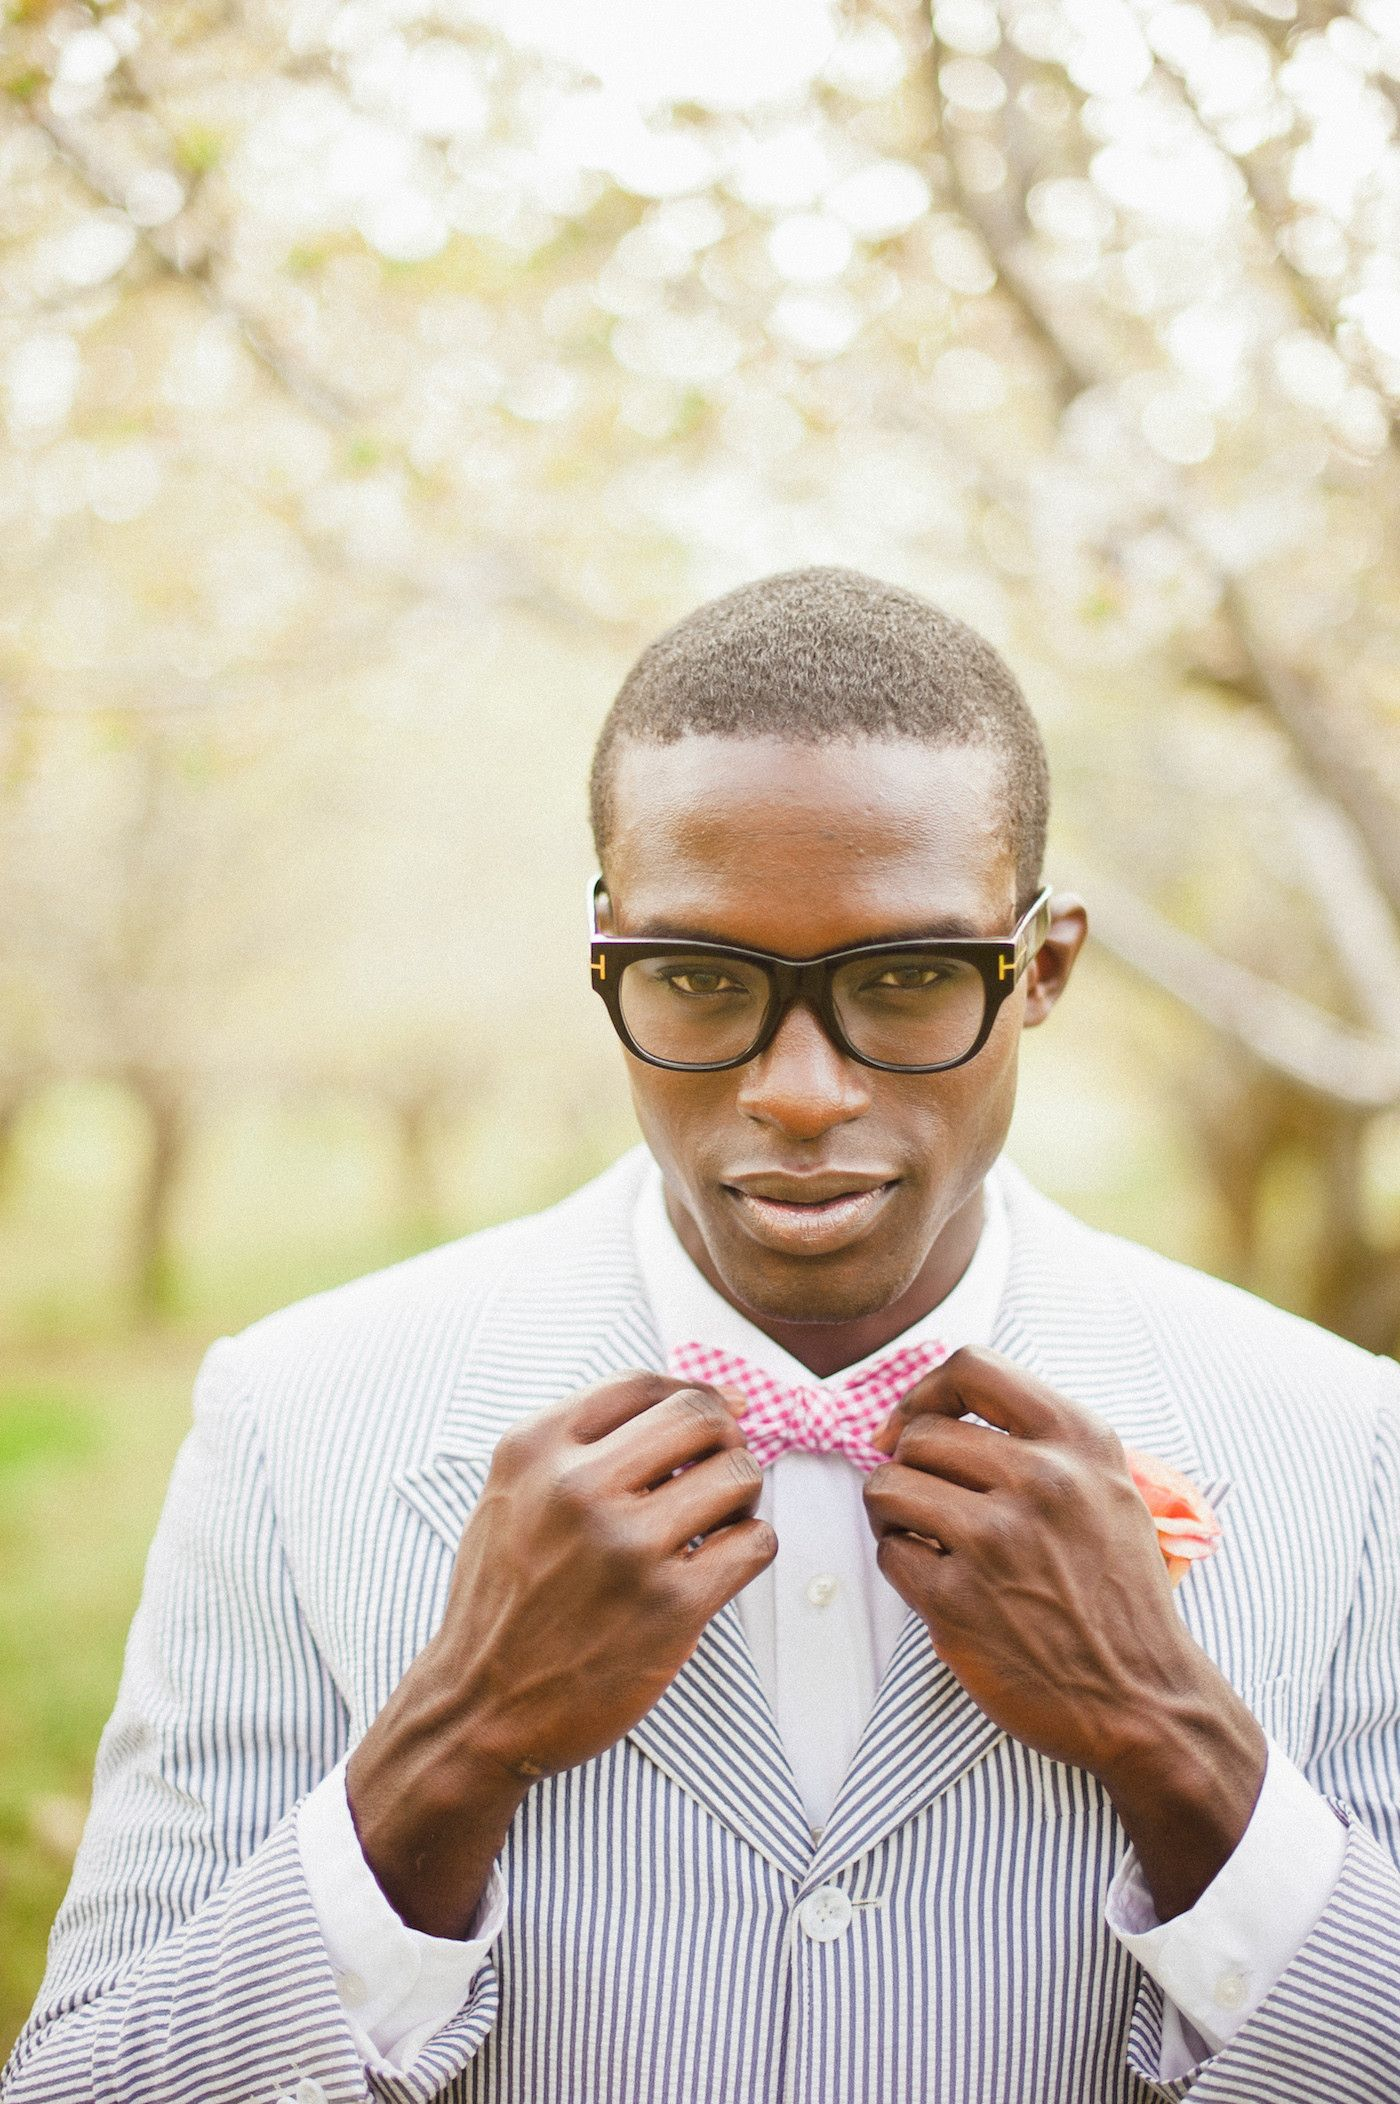 nontraditional looks for the fashionforward groom wedding